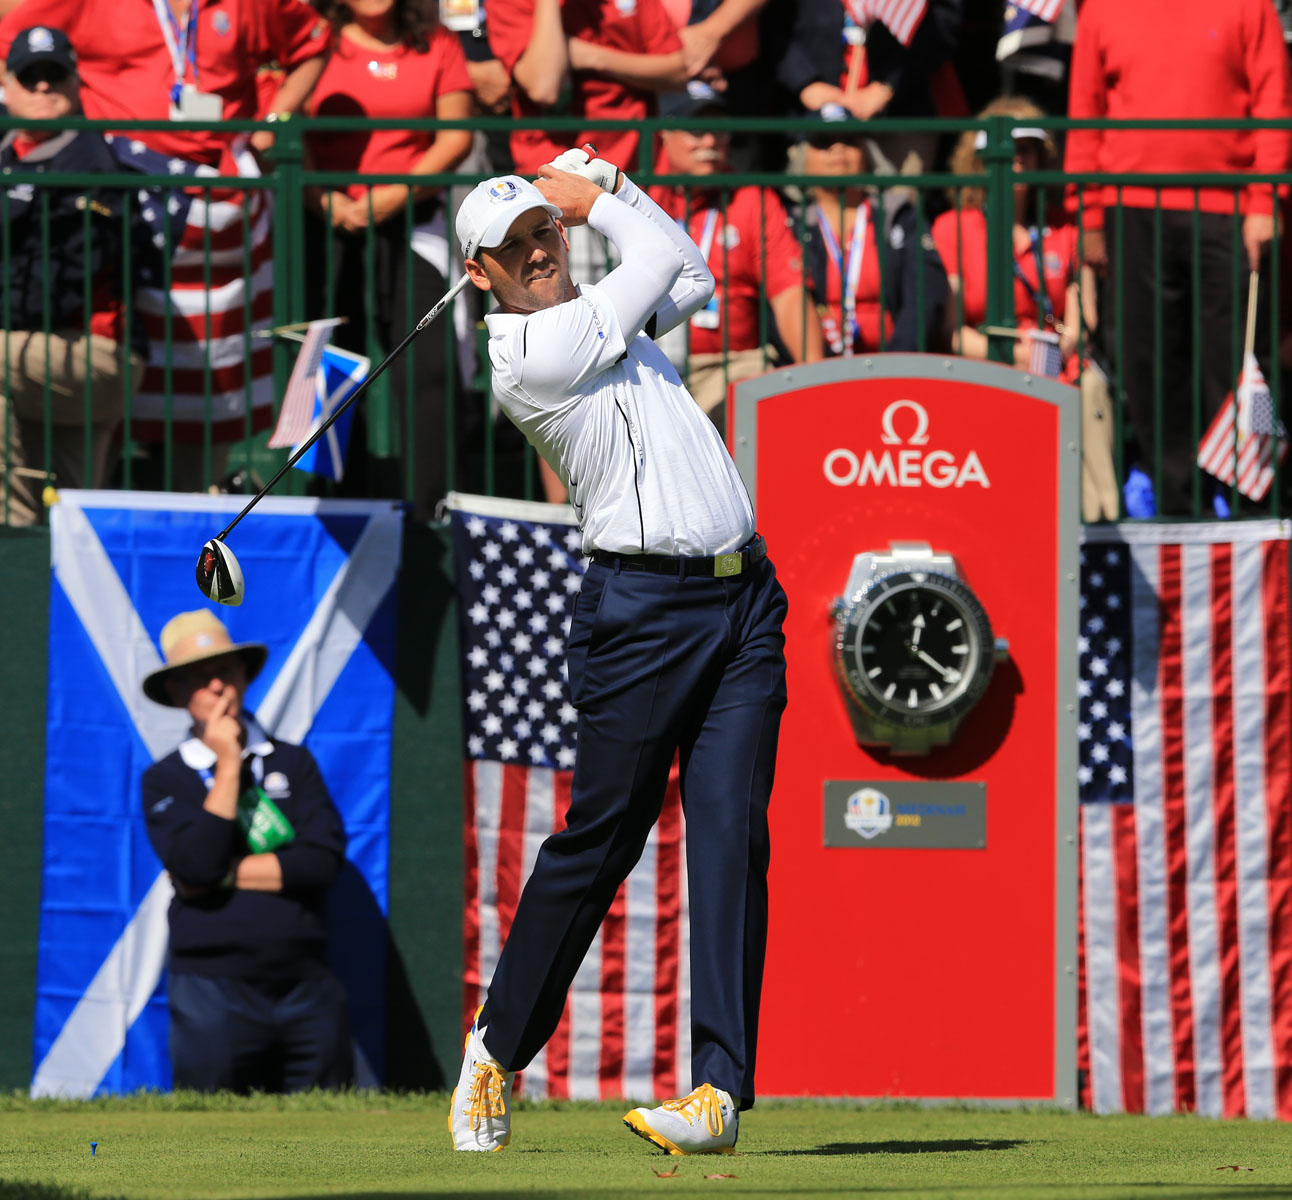 Golfer Sergio Garcia tees off at the PGA of America golf tournament